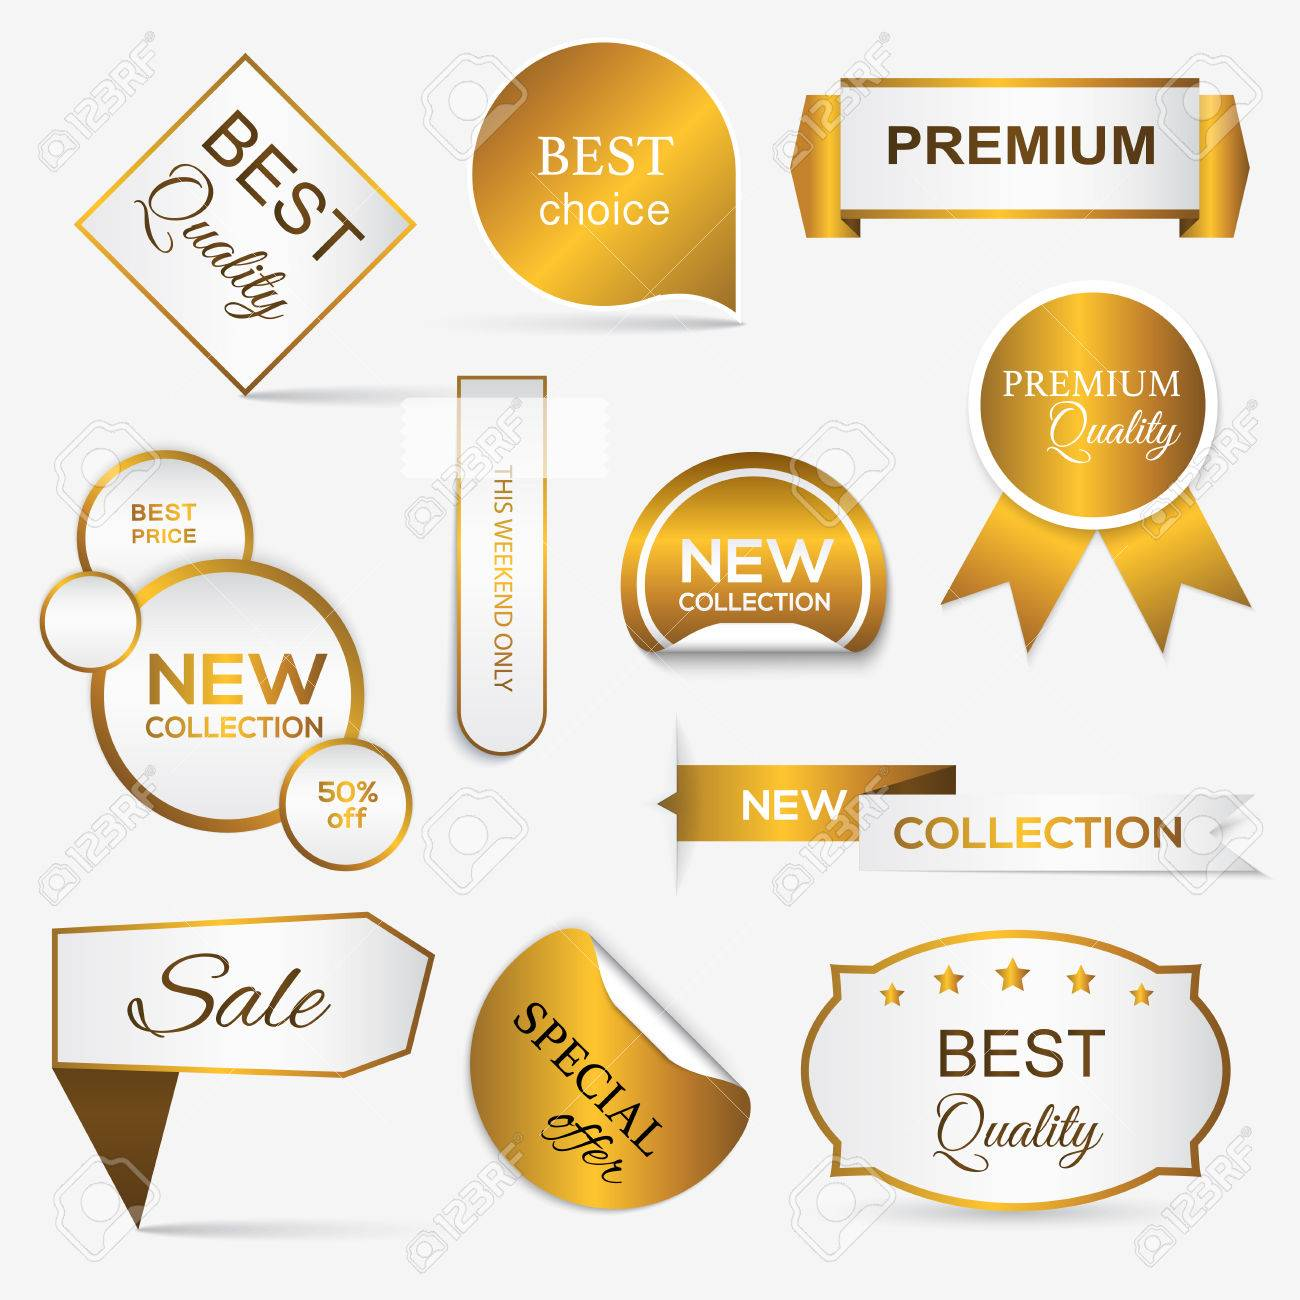 Collection of golden premium promo seals/stickers. isolated vector illustration - 41369013